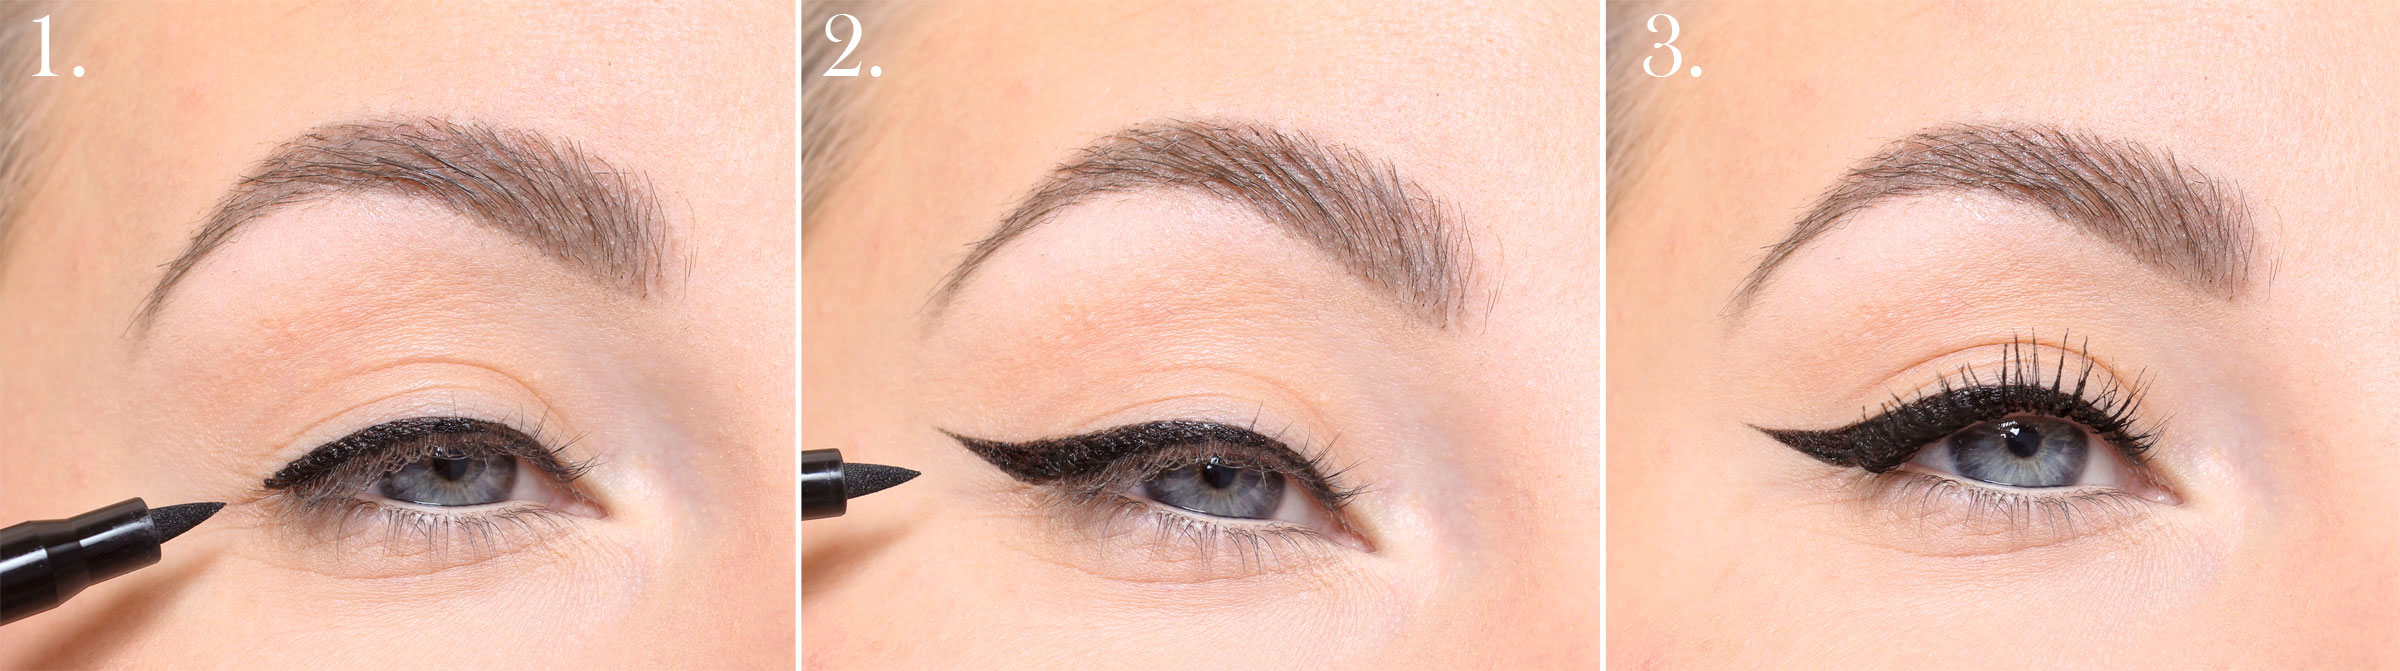 sharp eyeliner step by step